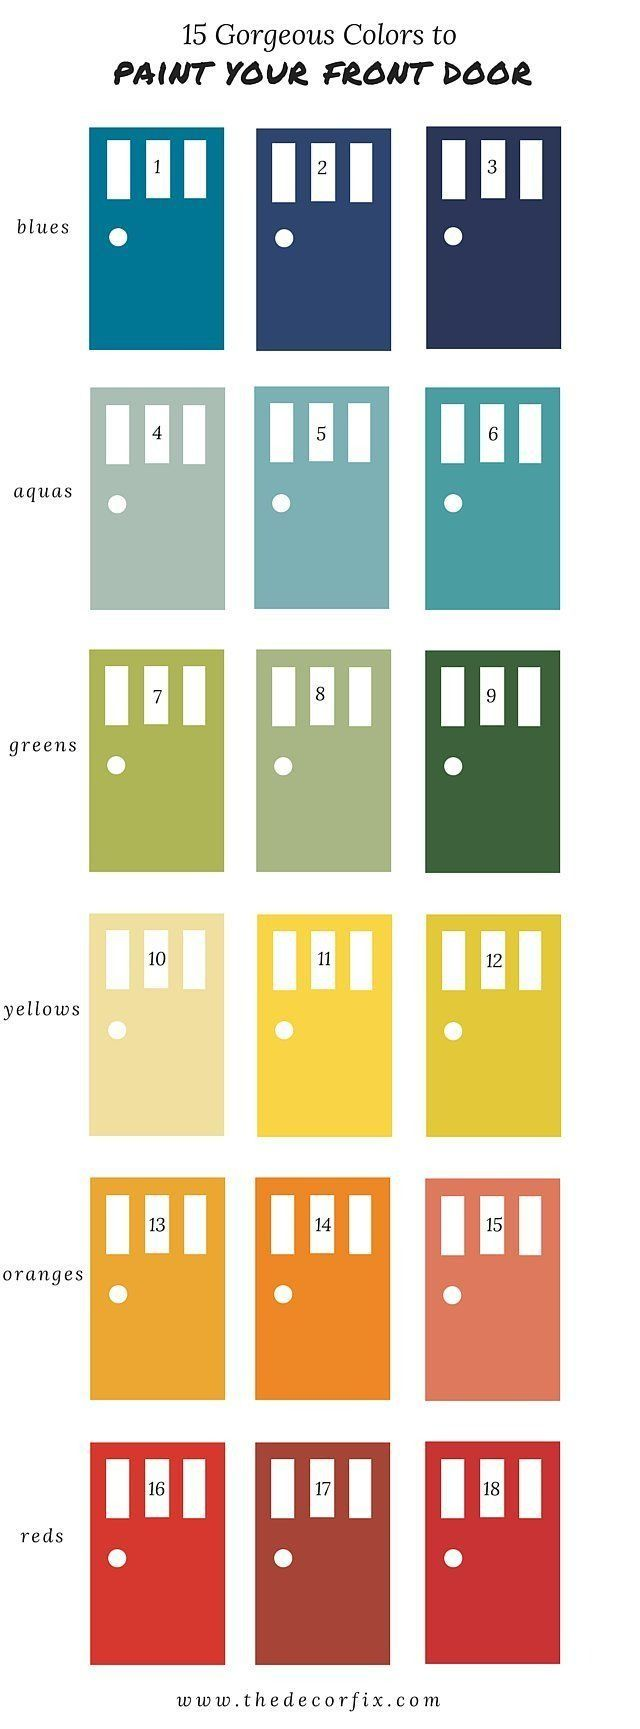 How to pick the best paint color for your front door.